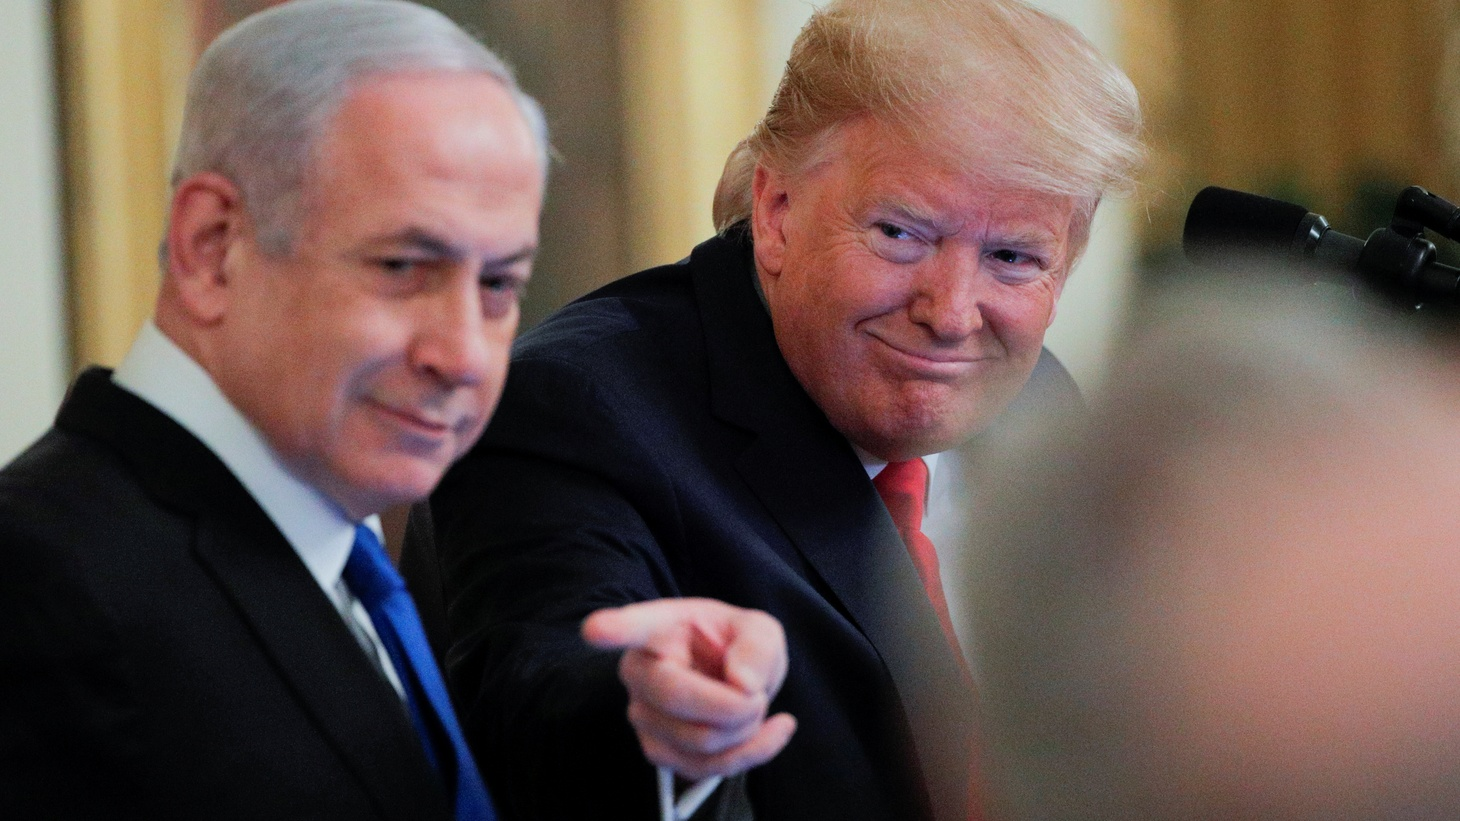 U.S. President Donald Trump points past Israel's Prime Minister Benjamin Netanyahu as they discuss a Middle East peace plan proposal during a joint news conference in the East Room of the White House in Washington, U.S., January 28, 2020.